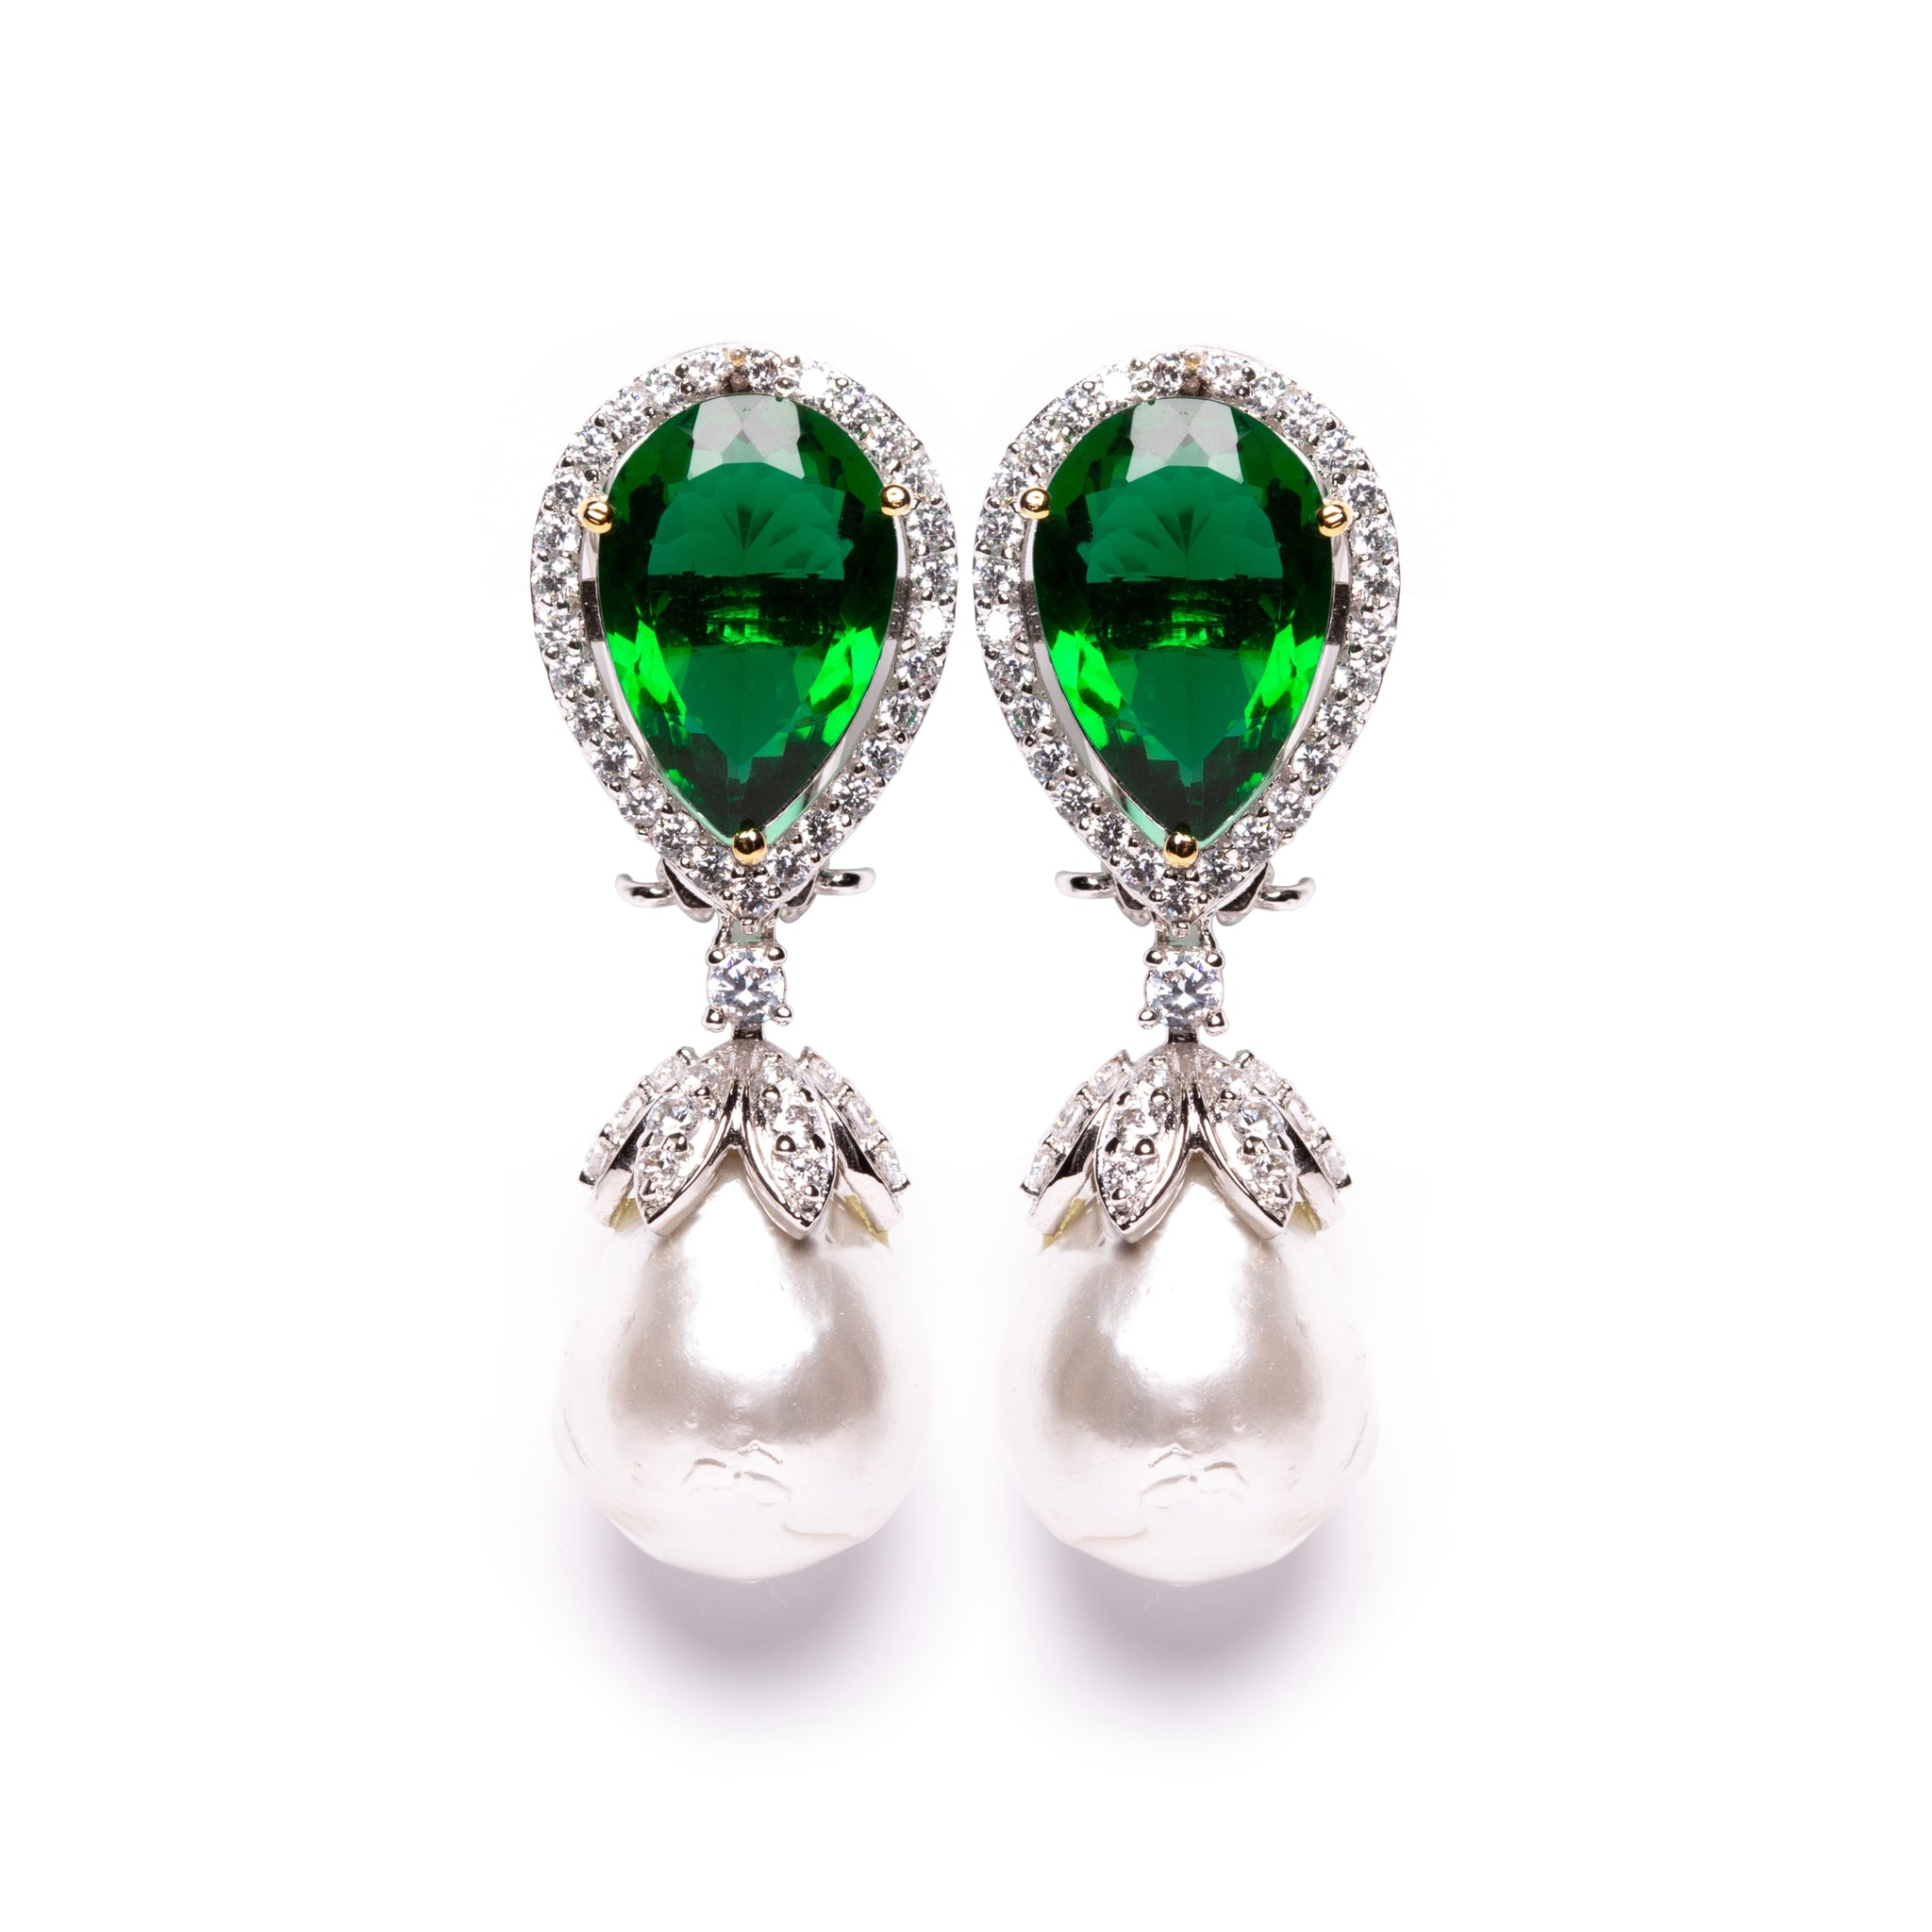 Emerald pearl drop earrings